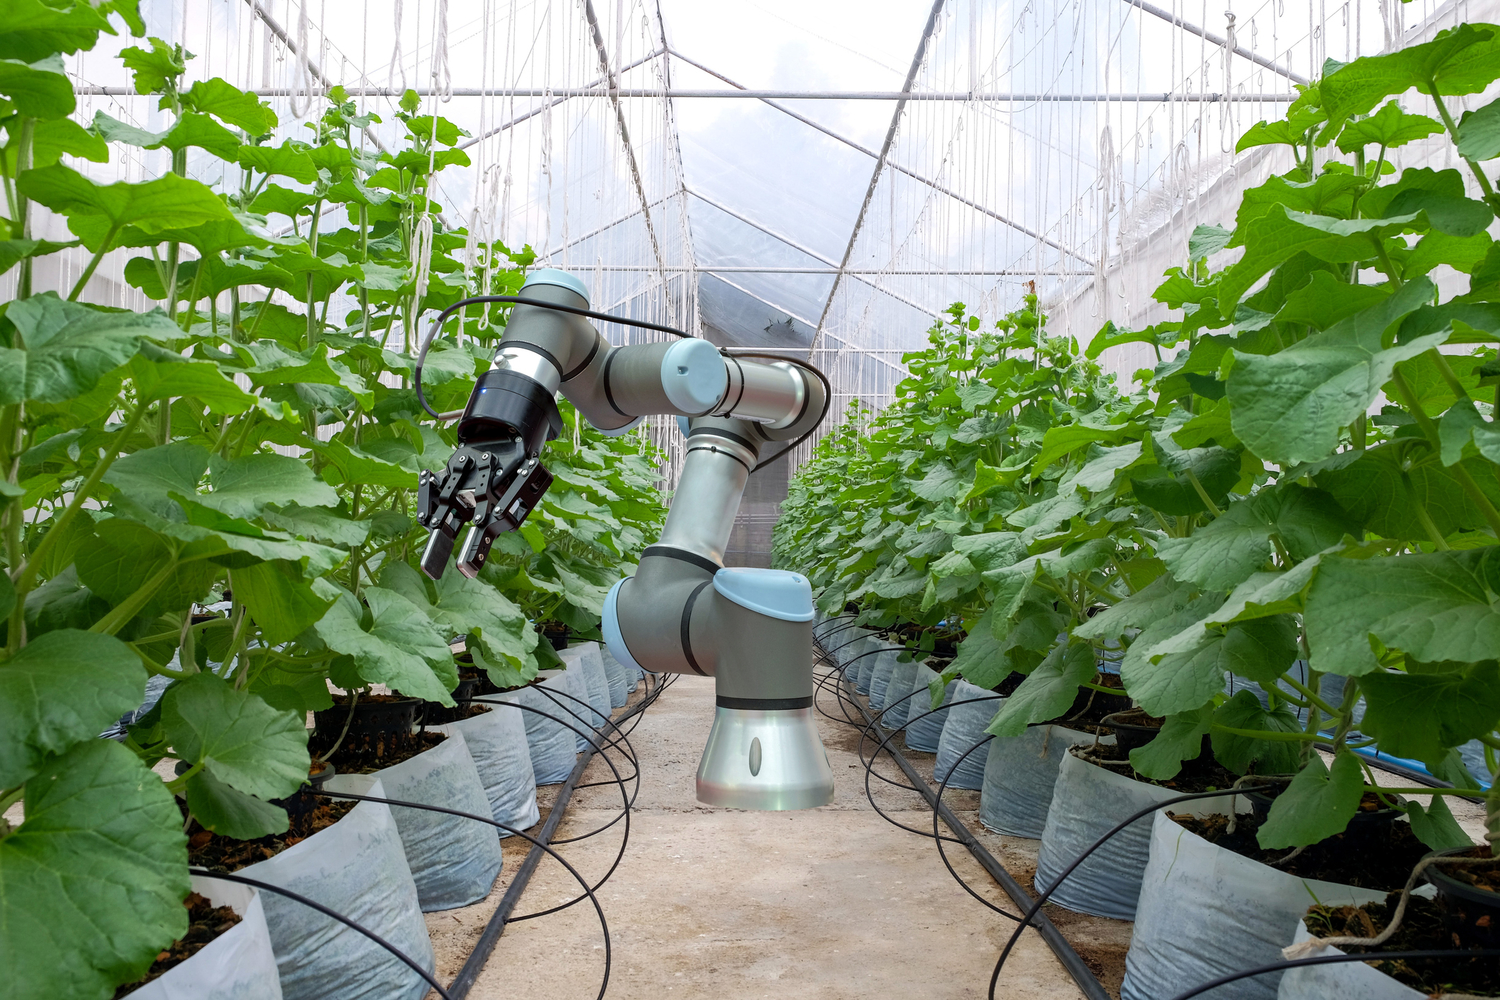 Robot working in greenhouse/nursery